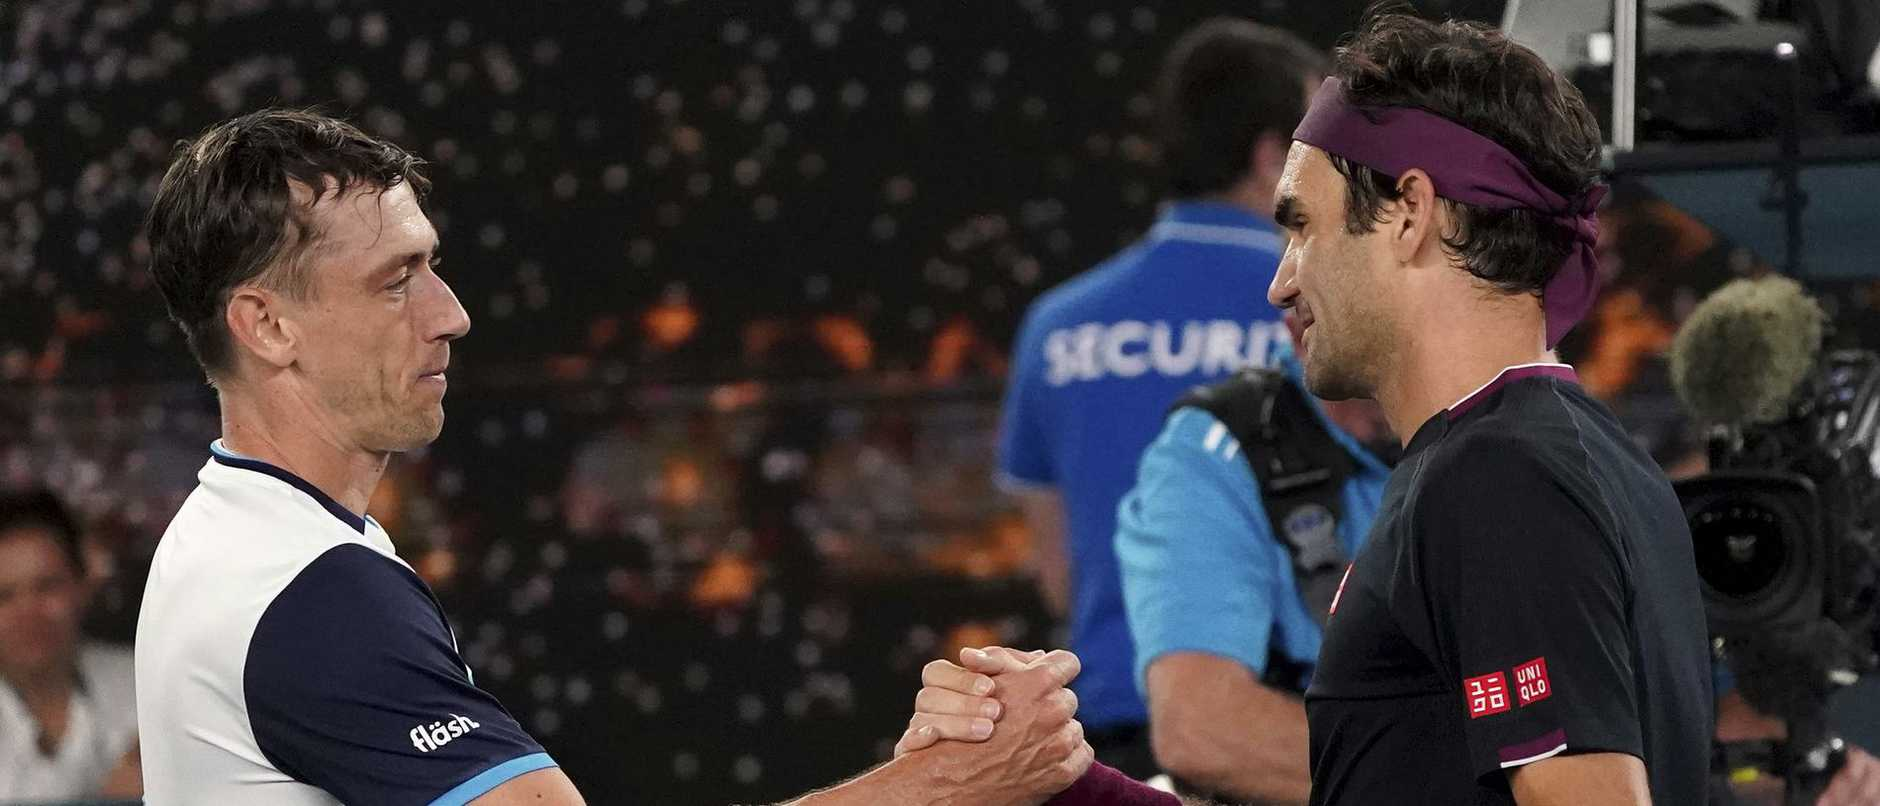 Brisbane's John Millman, left, shakes hands with Switzerland's Roger Federer following their match at the Australian Open tennis championship in Melbourne. Millman lost narrowly - after beating the Swiss great at the US Open. (AP Photo/Lee Jin-man, File)